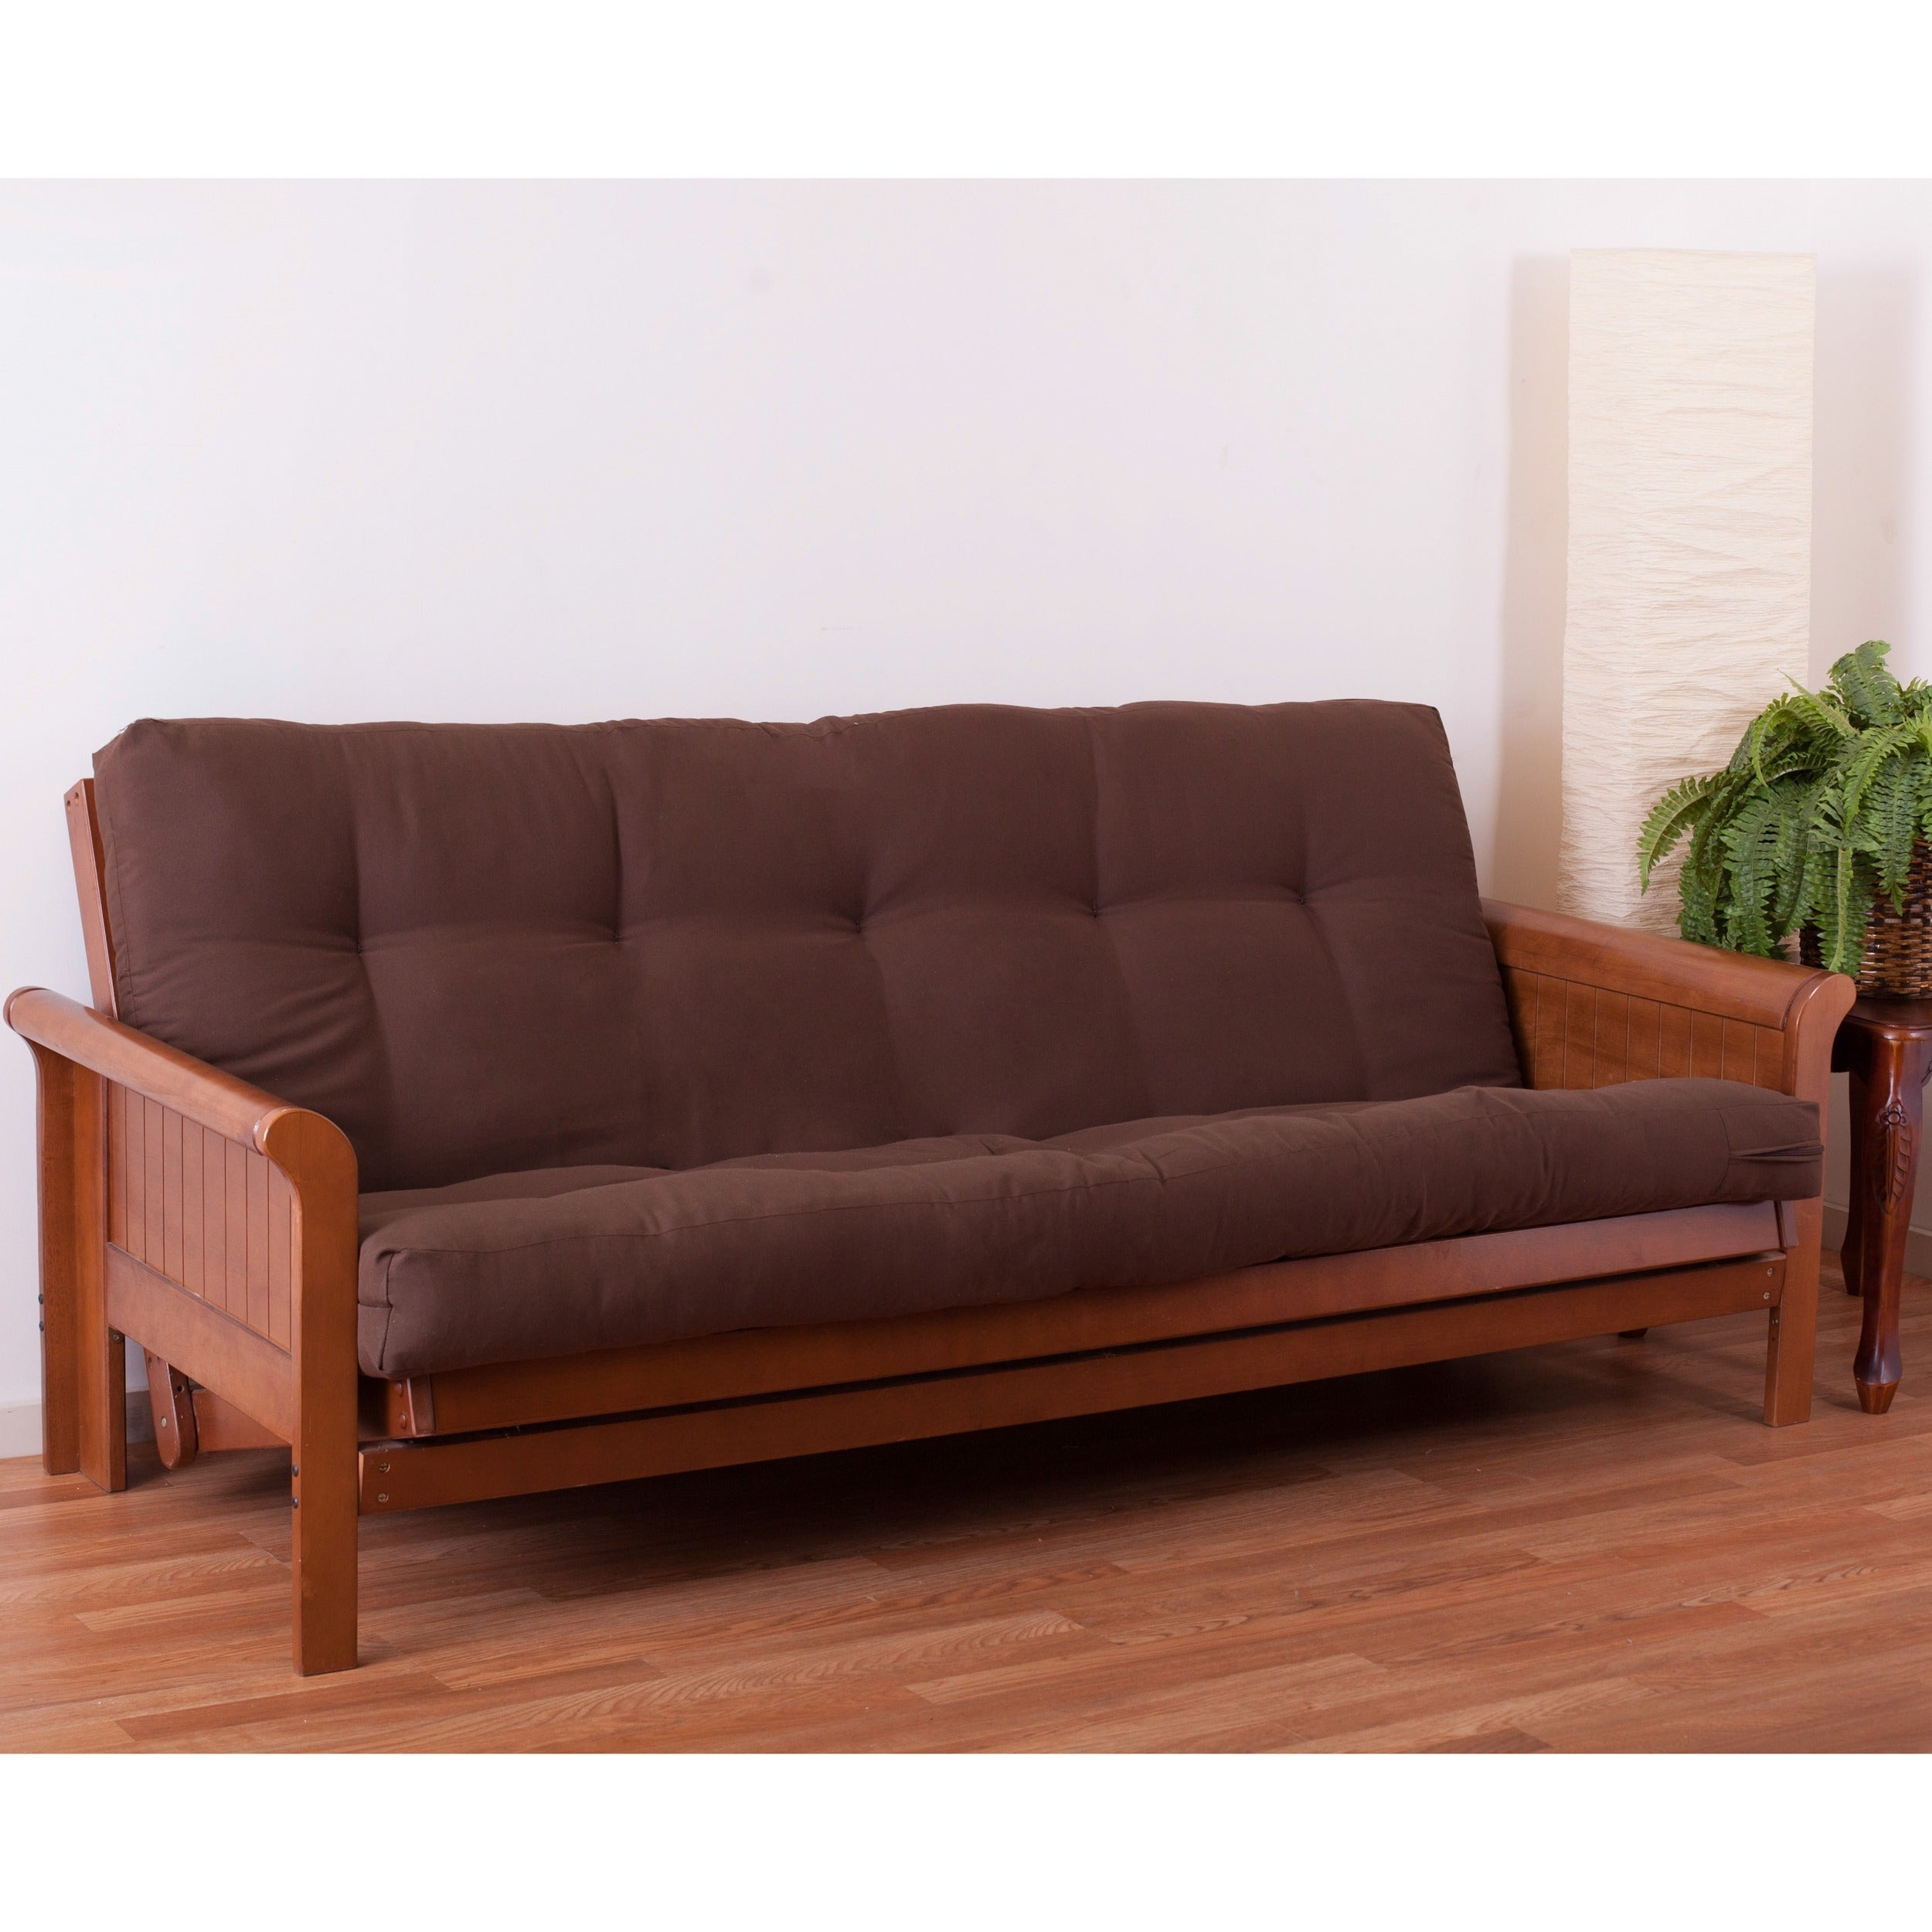 itm sofa new s queen bed frame loading fold futon wood solid image size sized bi futons is